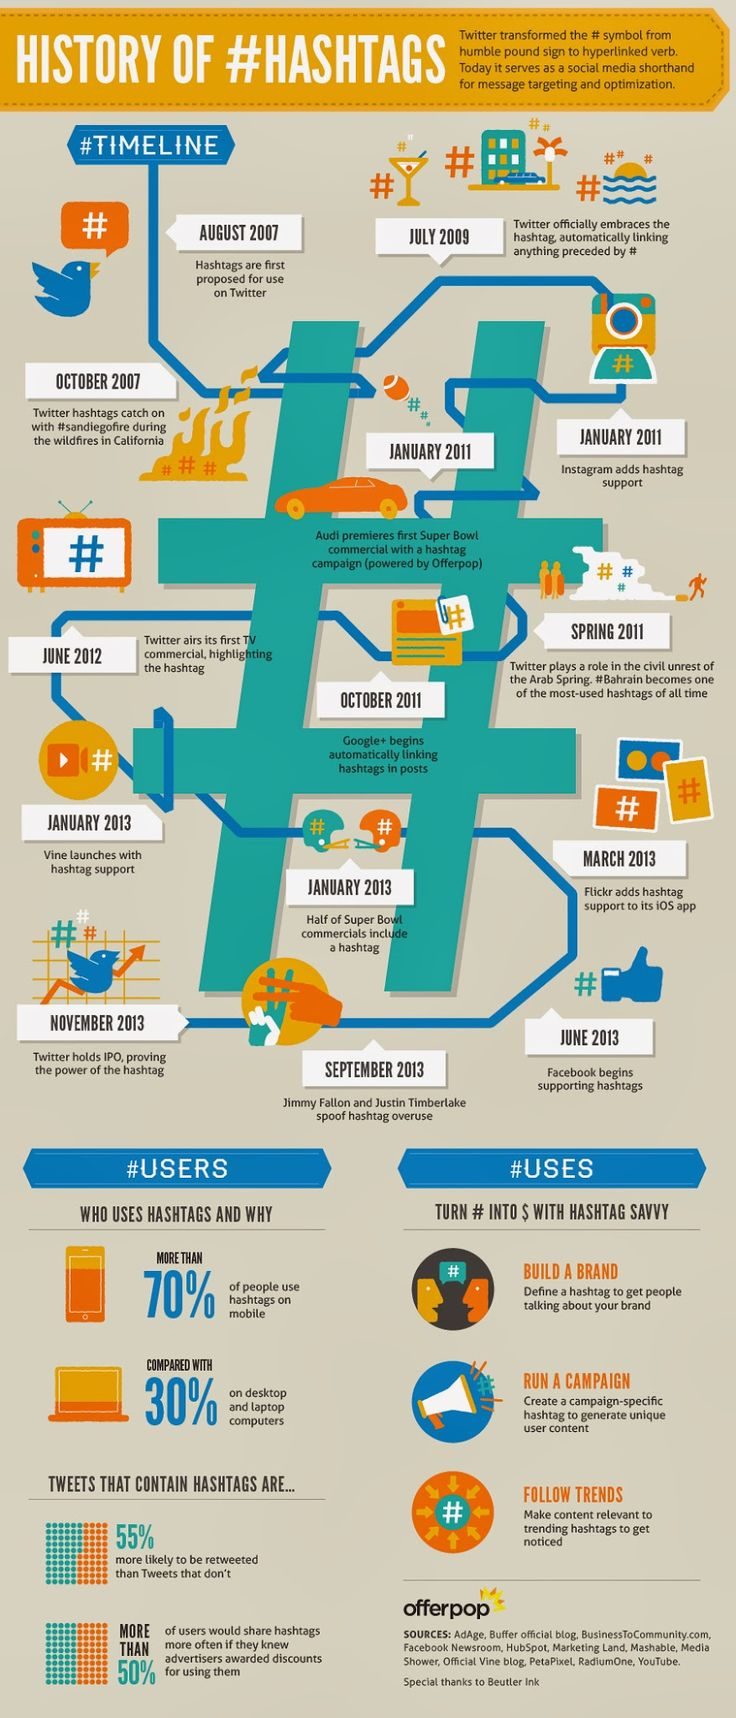 Hashtags make your content searchable. However, it's important to understand that they should be used correctly.